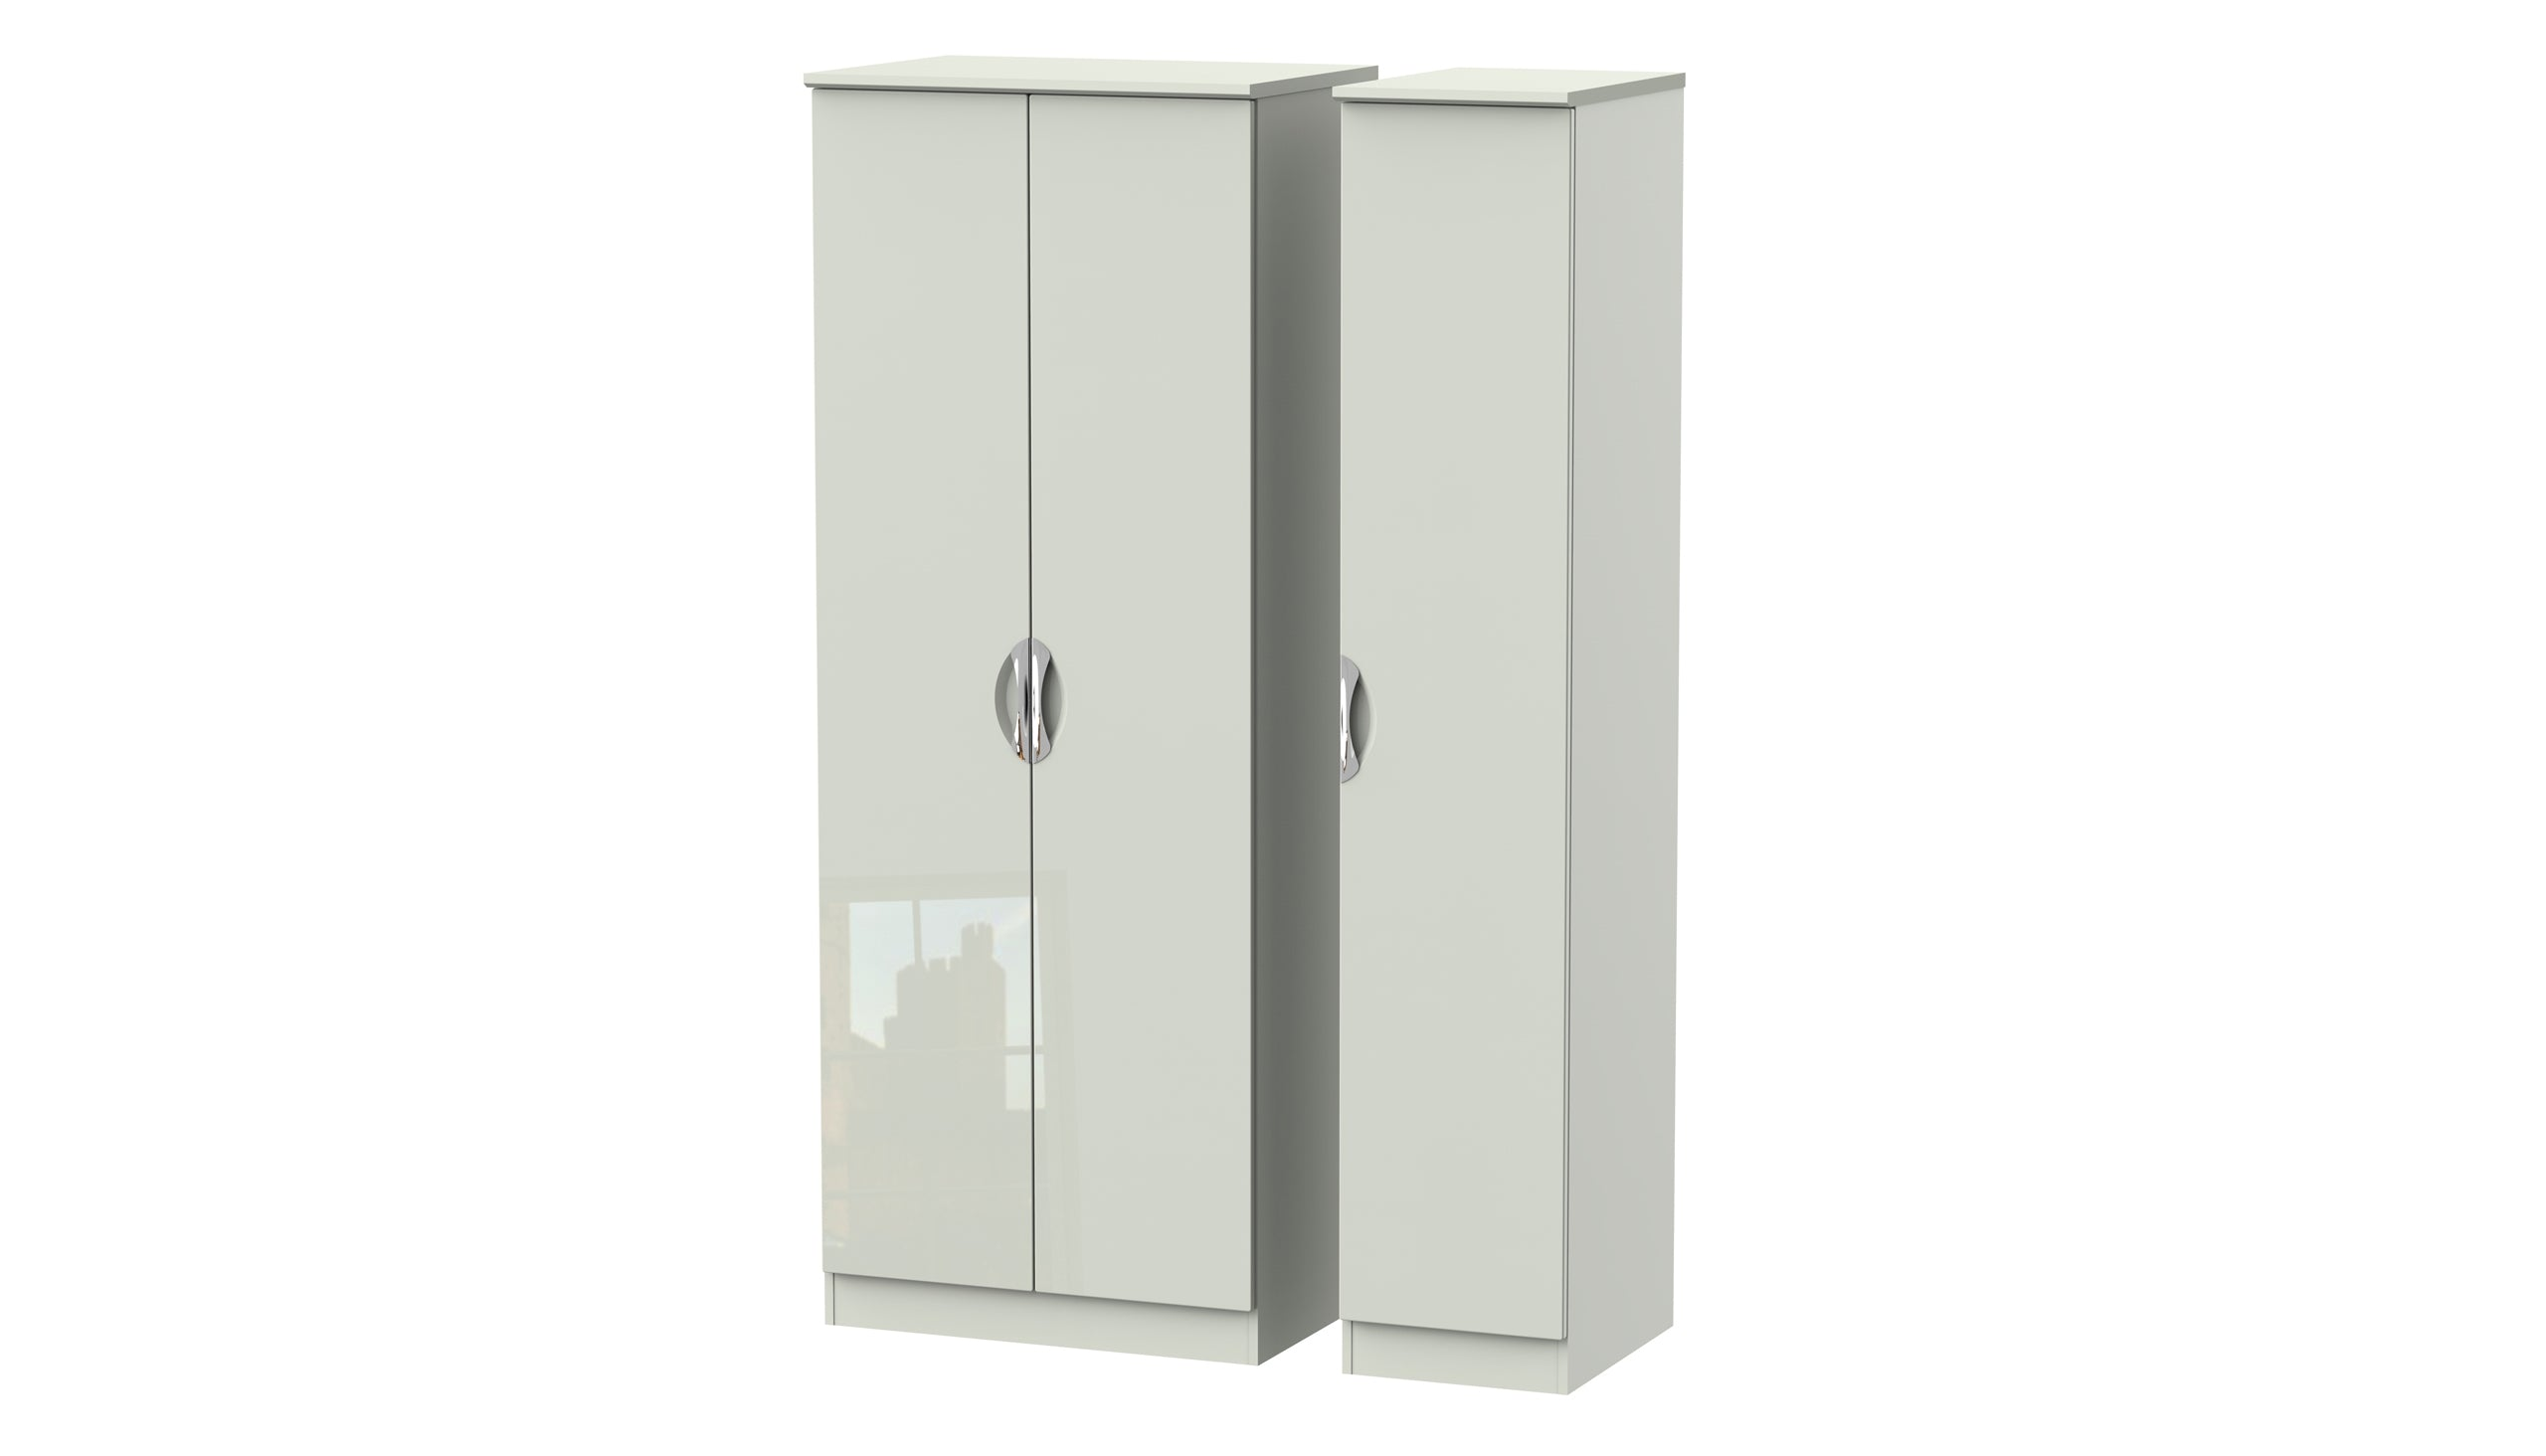 Moda Tall 3 Door Wardrobe - AHF Furniture & Carpets